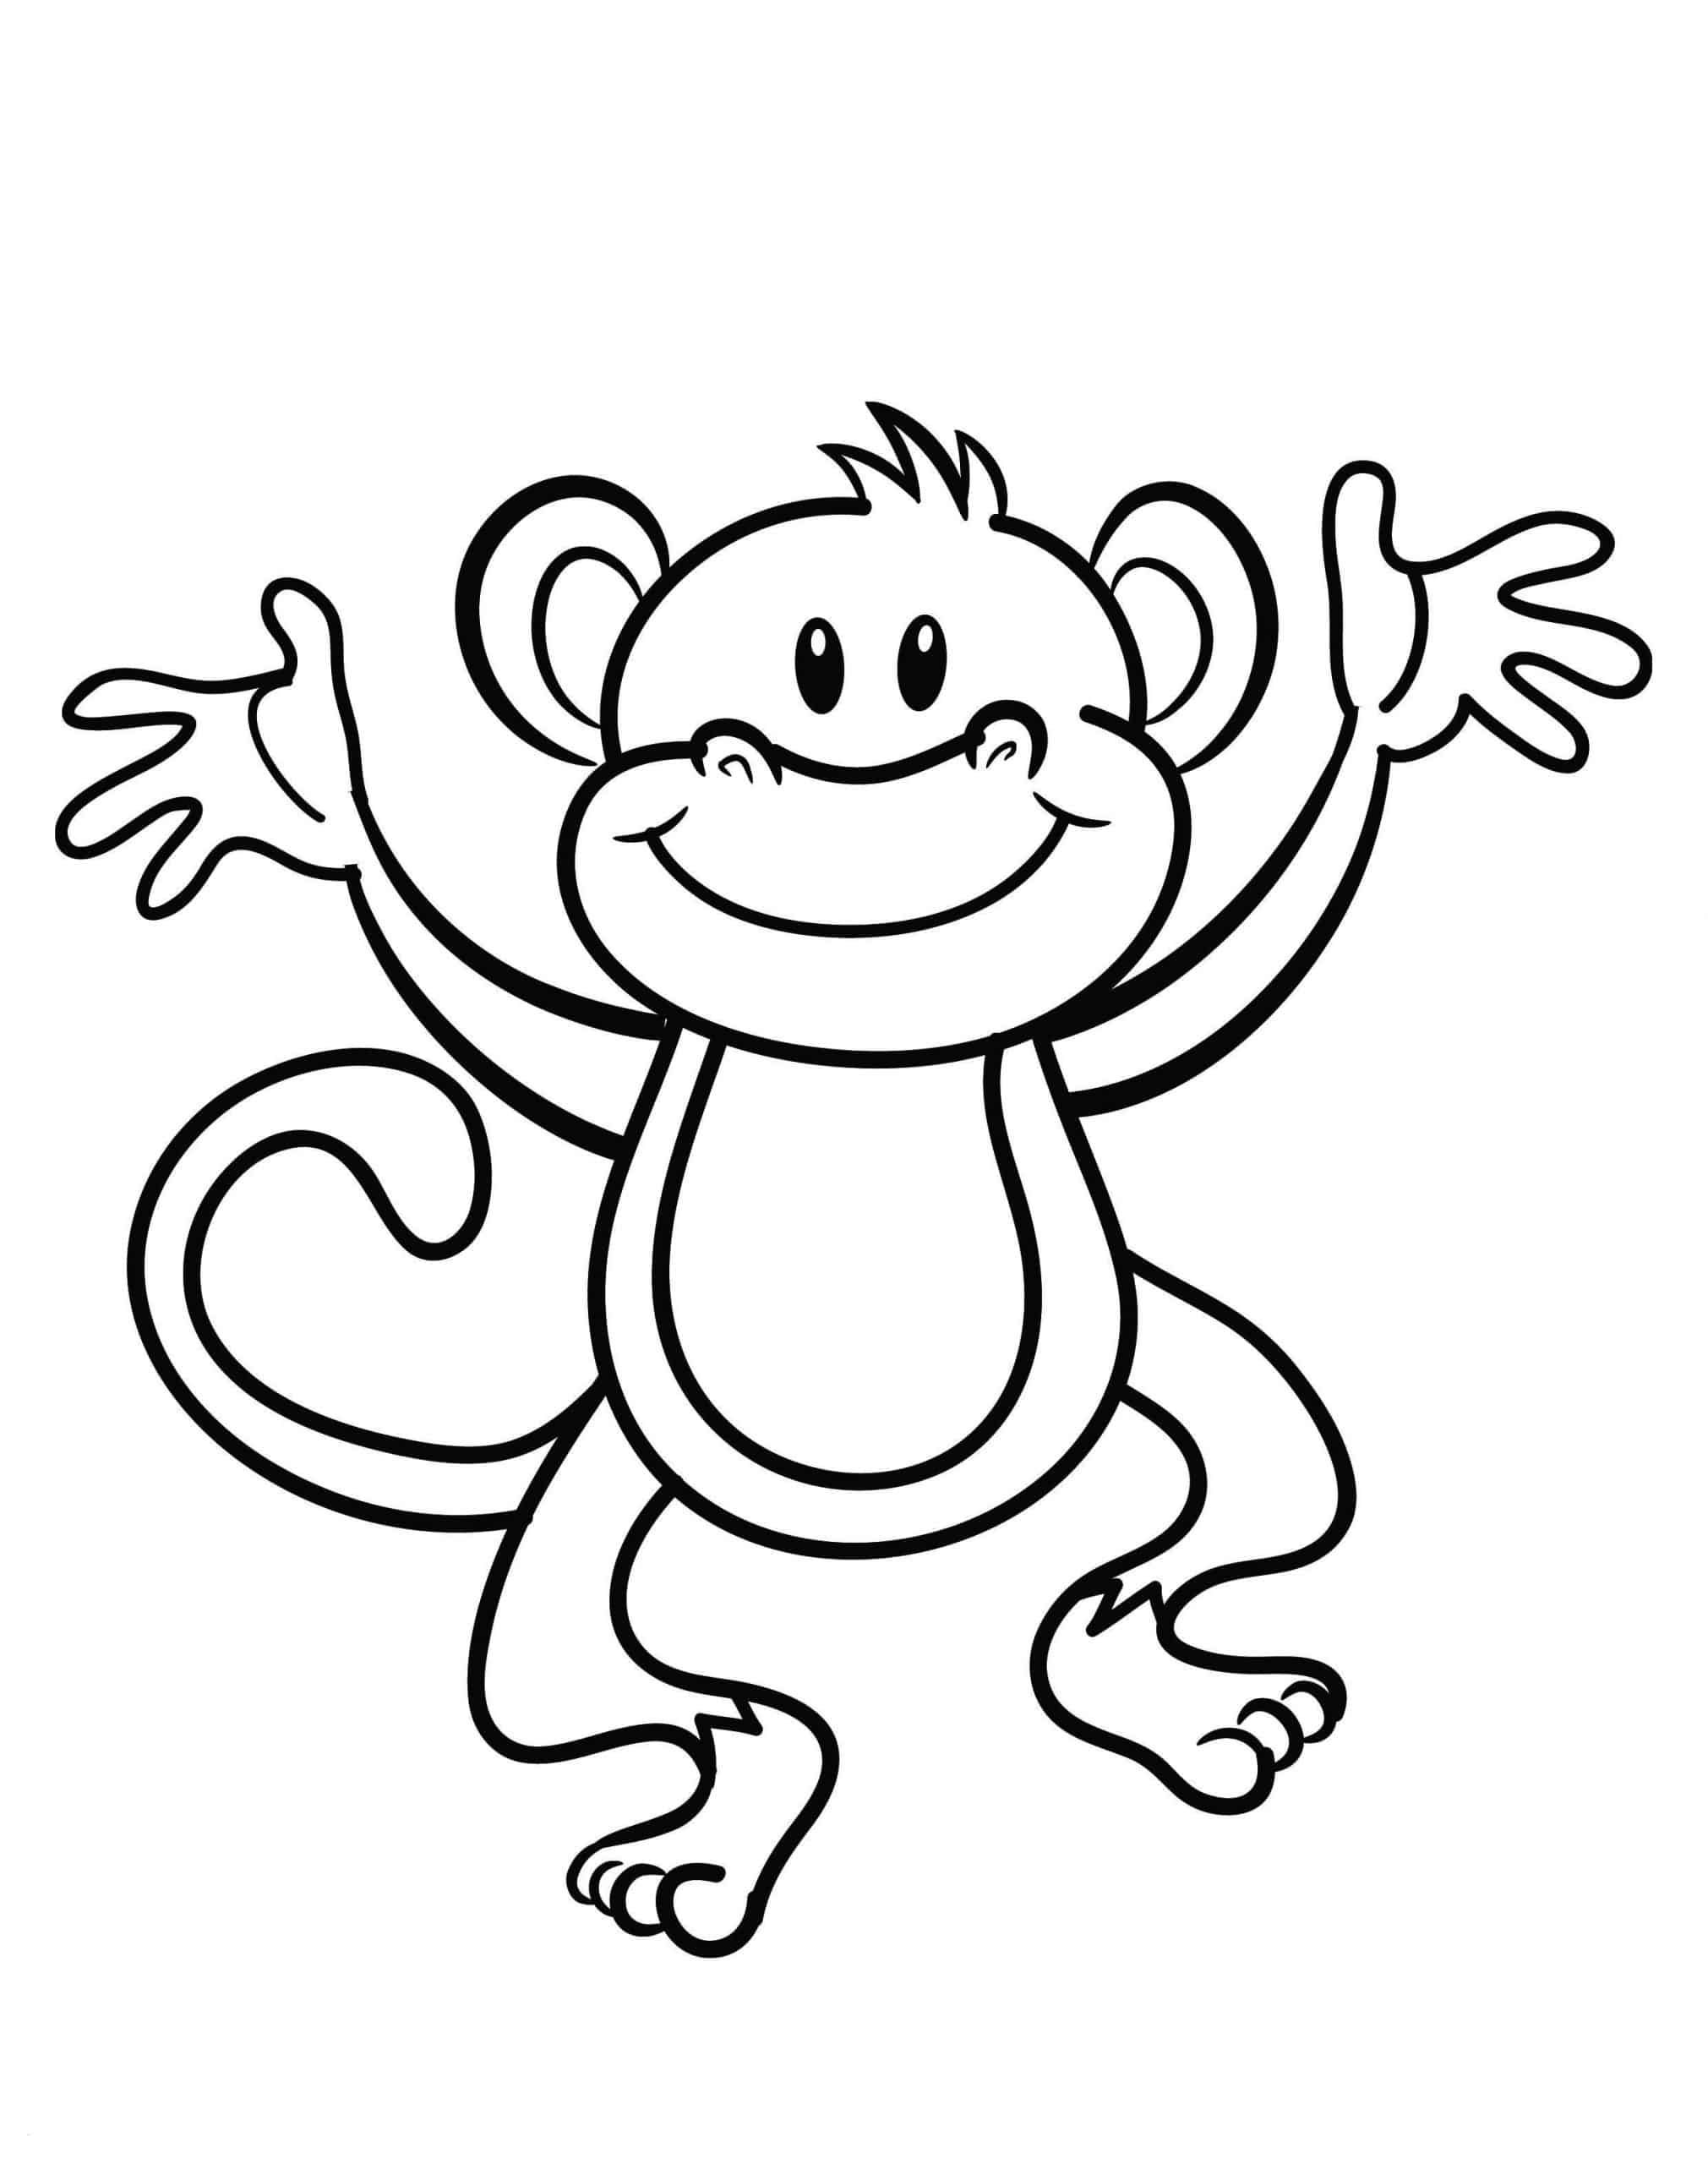 Free Monkey Coloring Page Printable Monkey Coloring Pages Animal Coloring Pages Cartoon Coloring Pages